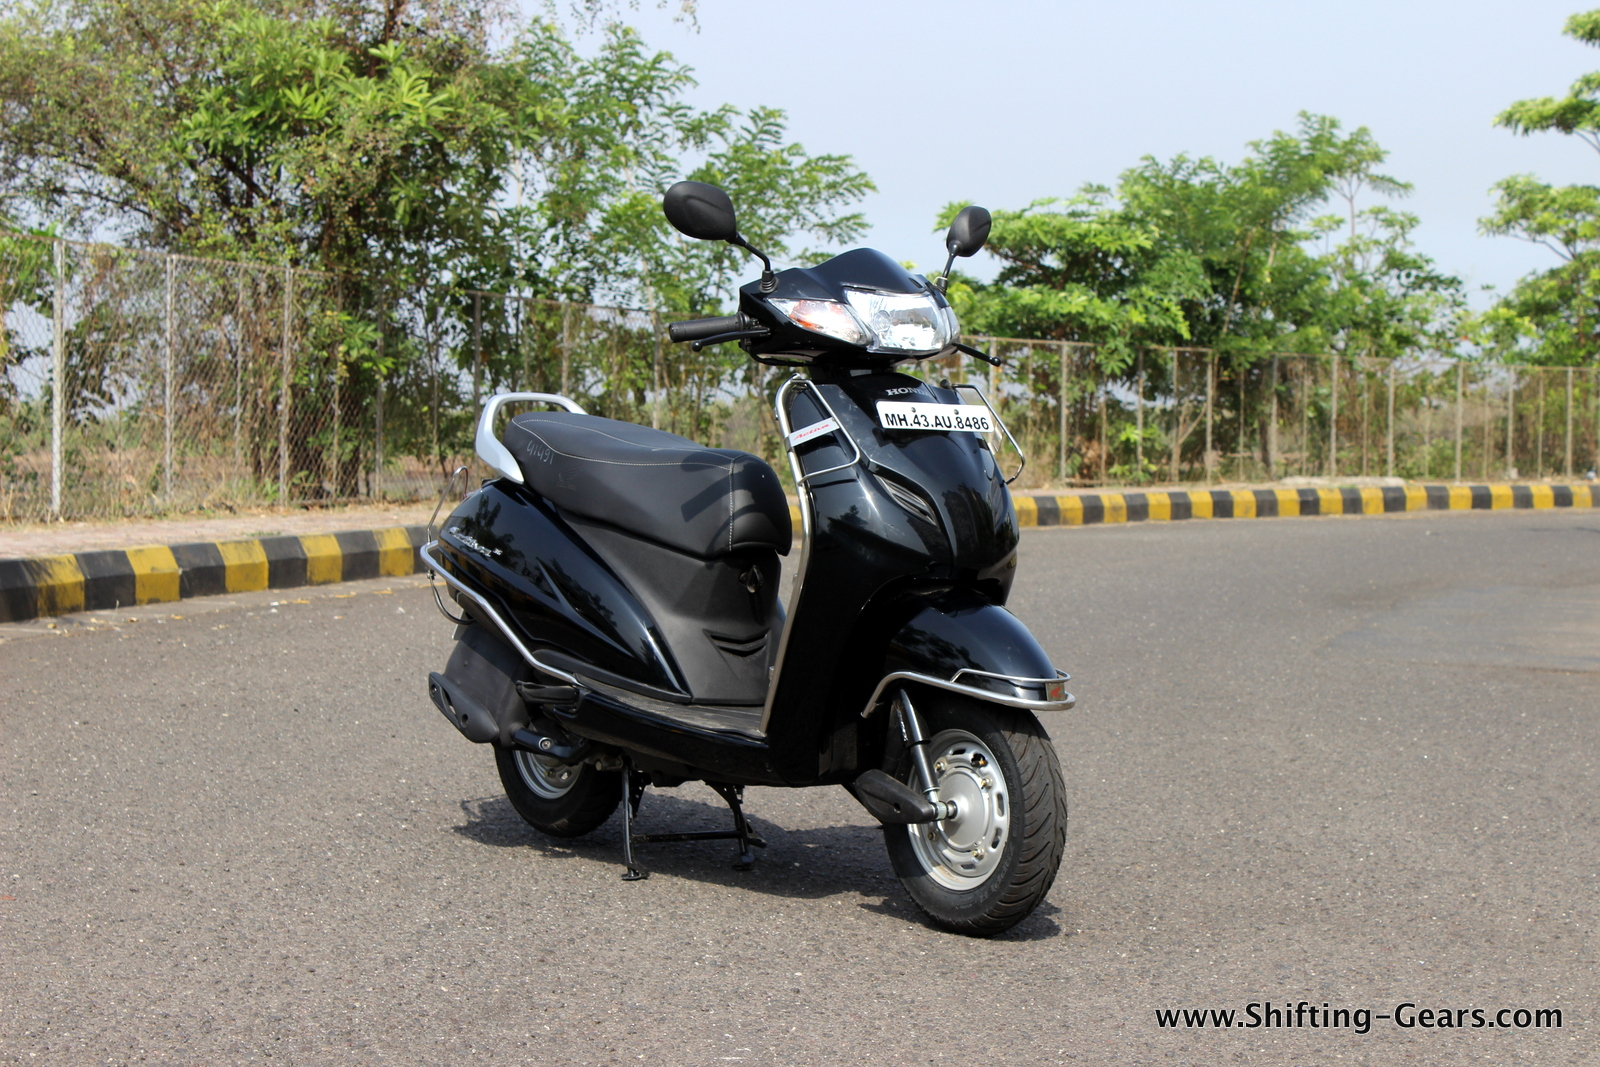 hmsi-honda-activa-3g-scooter-review-05